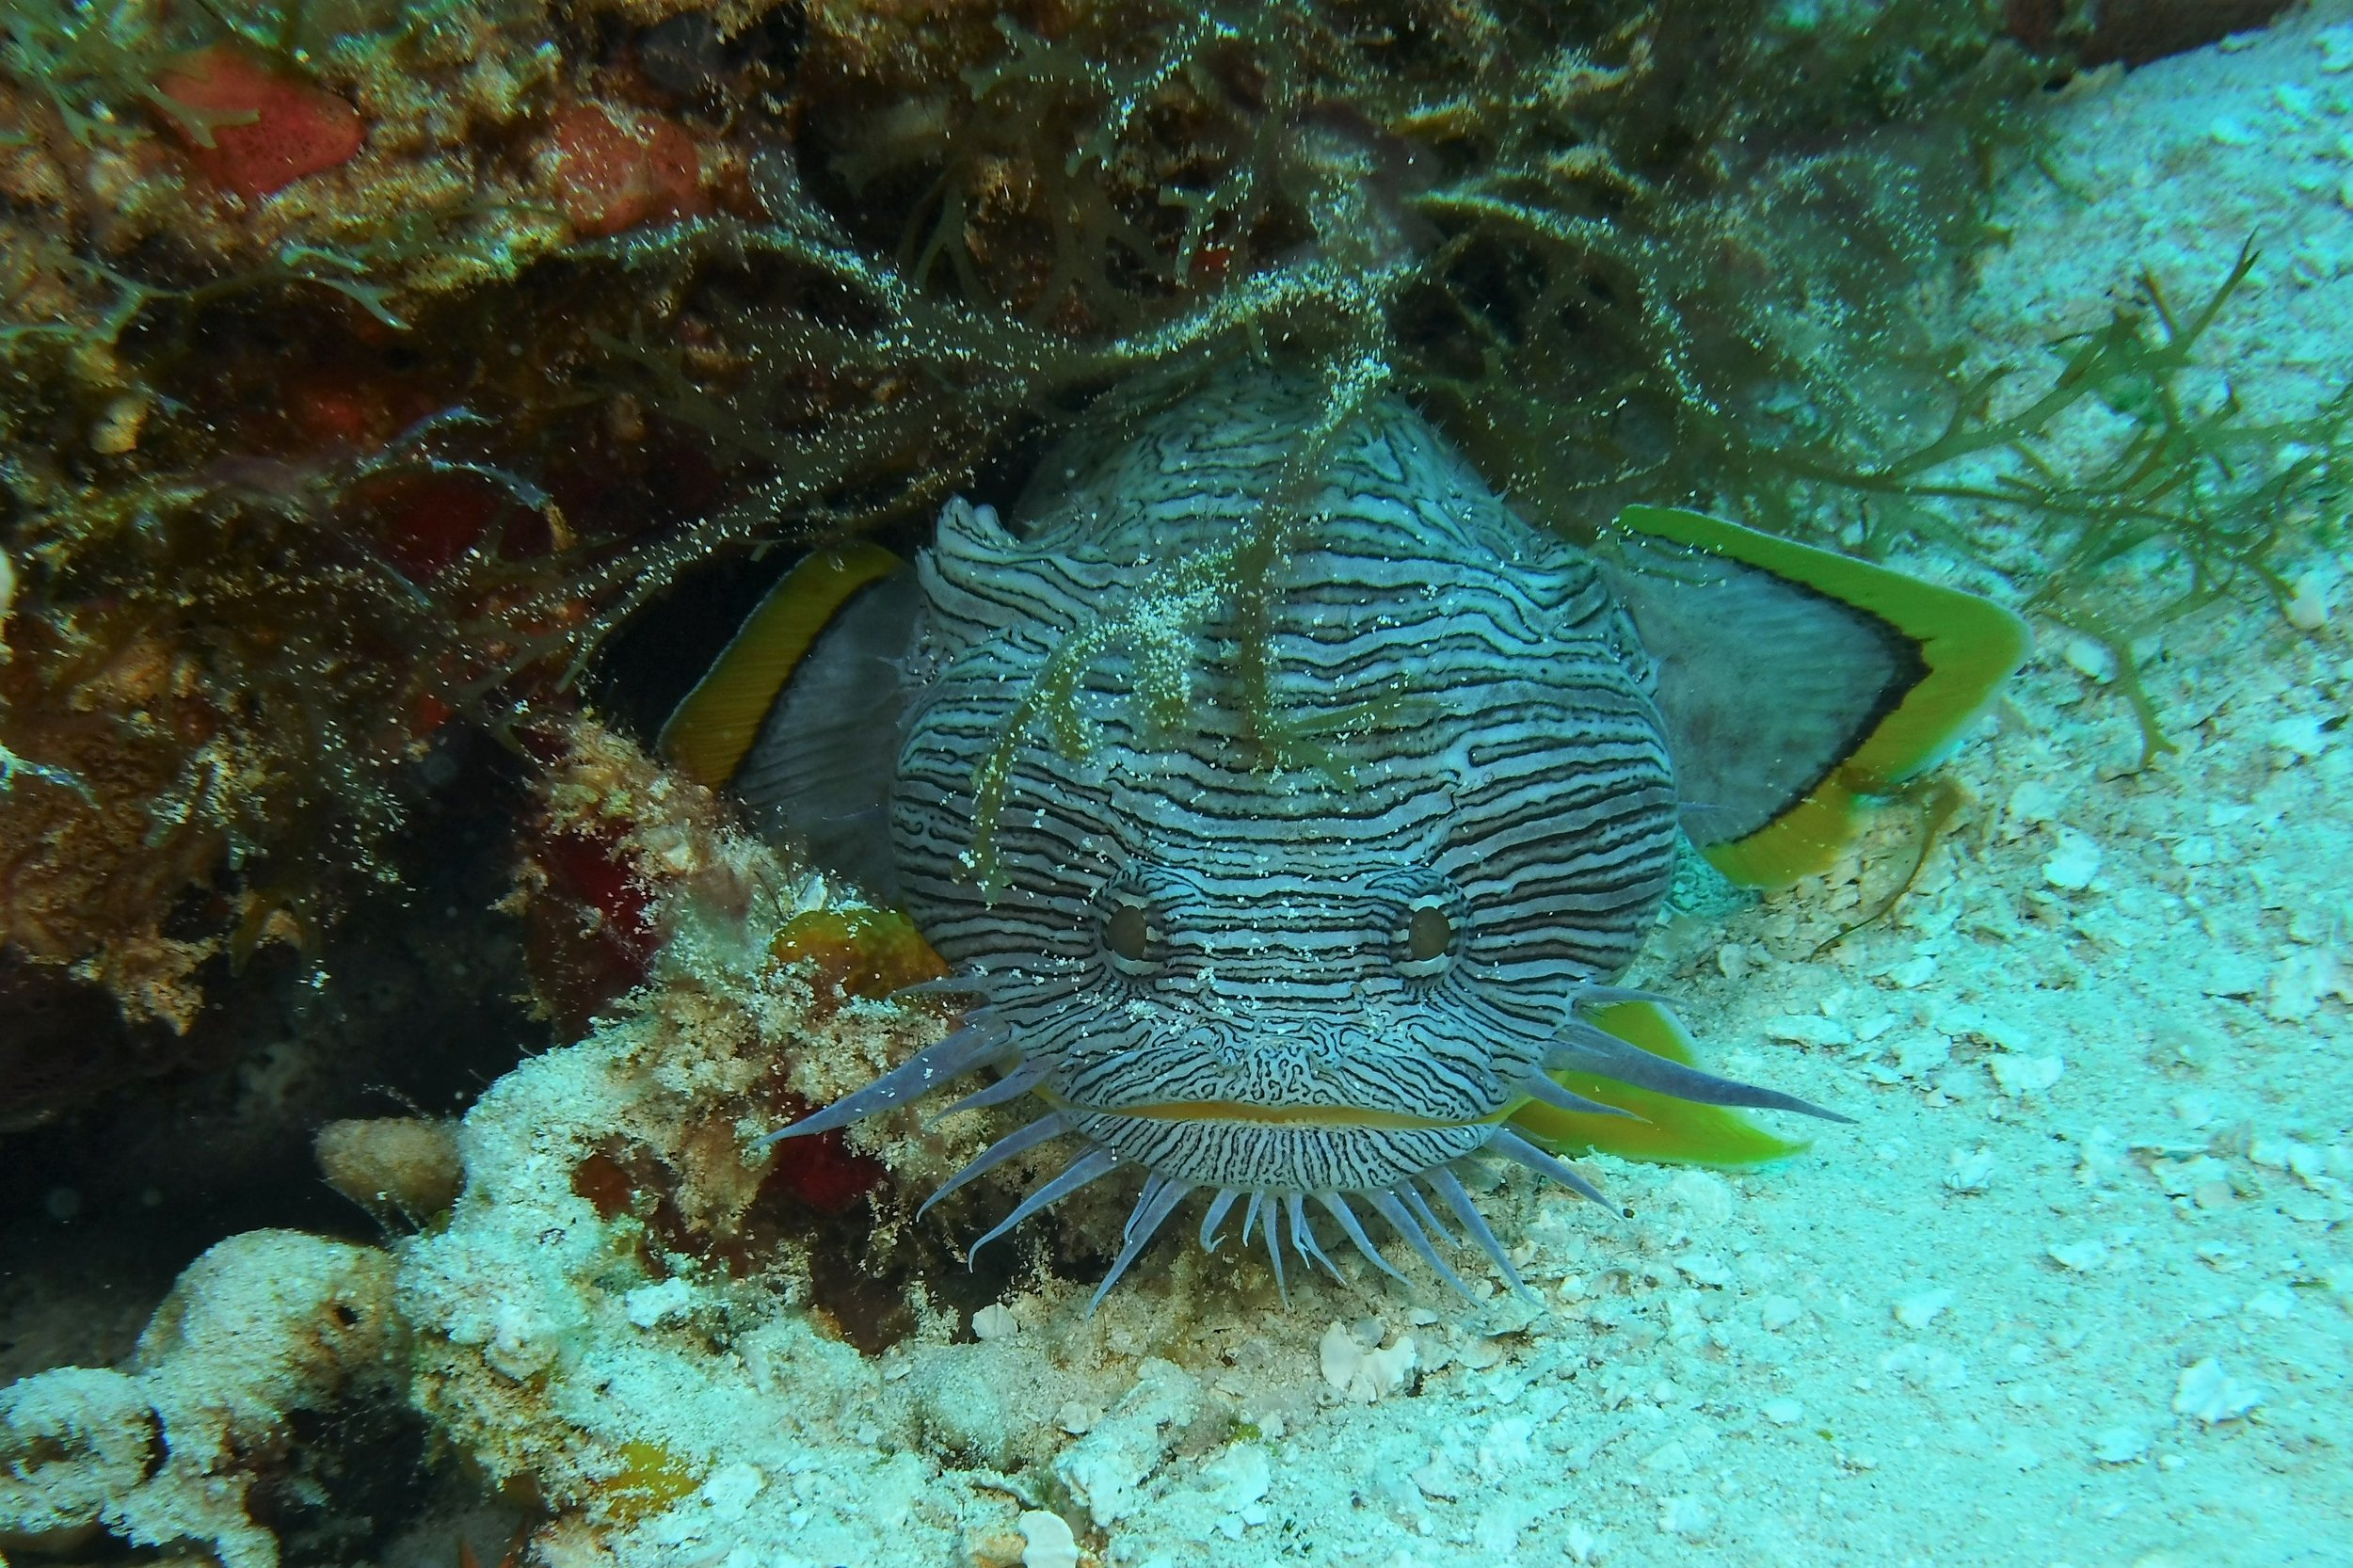 The Splendid Toadfish is found only in Cozumel.